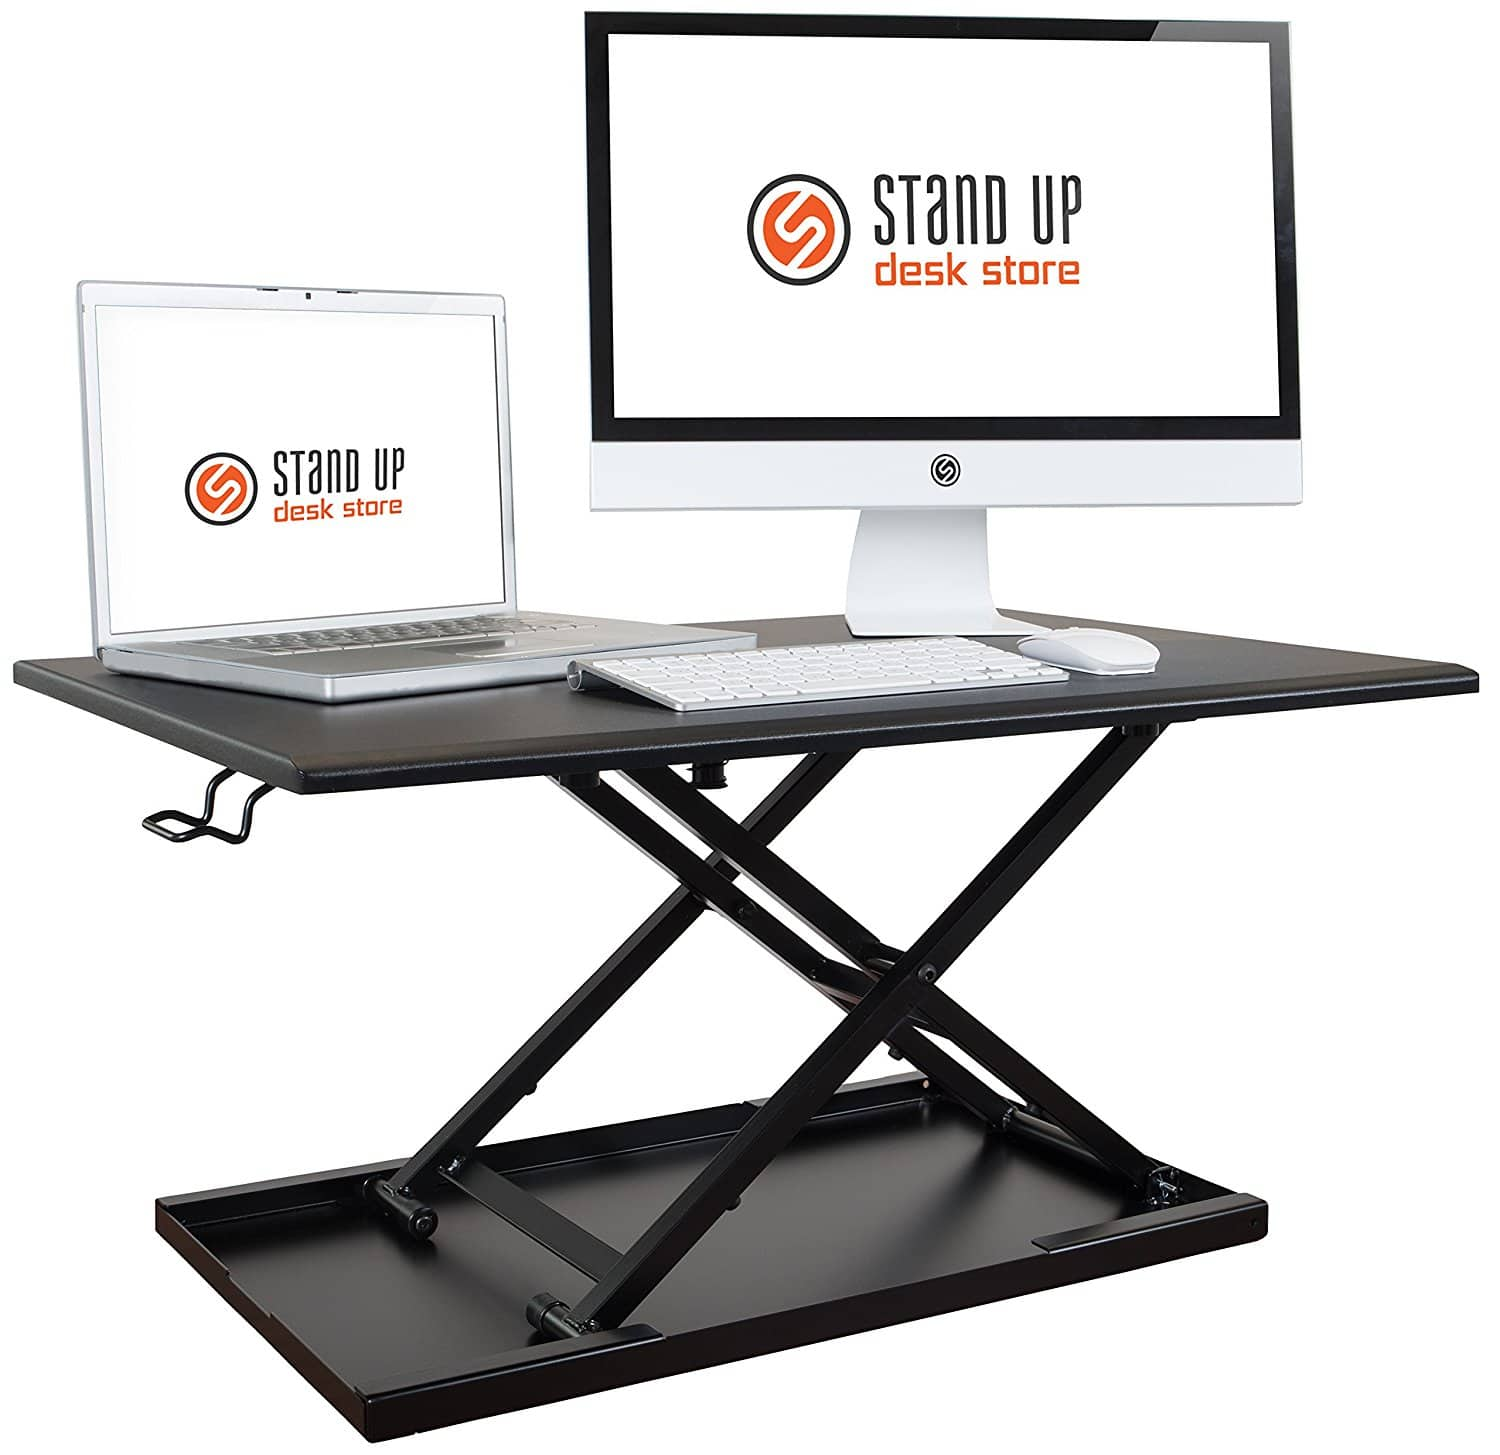 Stand Up Desk Store - Air Rise Standing Desk Converter (Lightning Deal) + Free Shiping $108.79